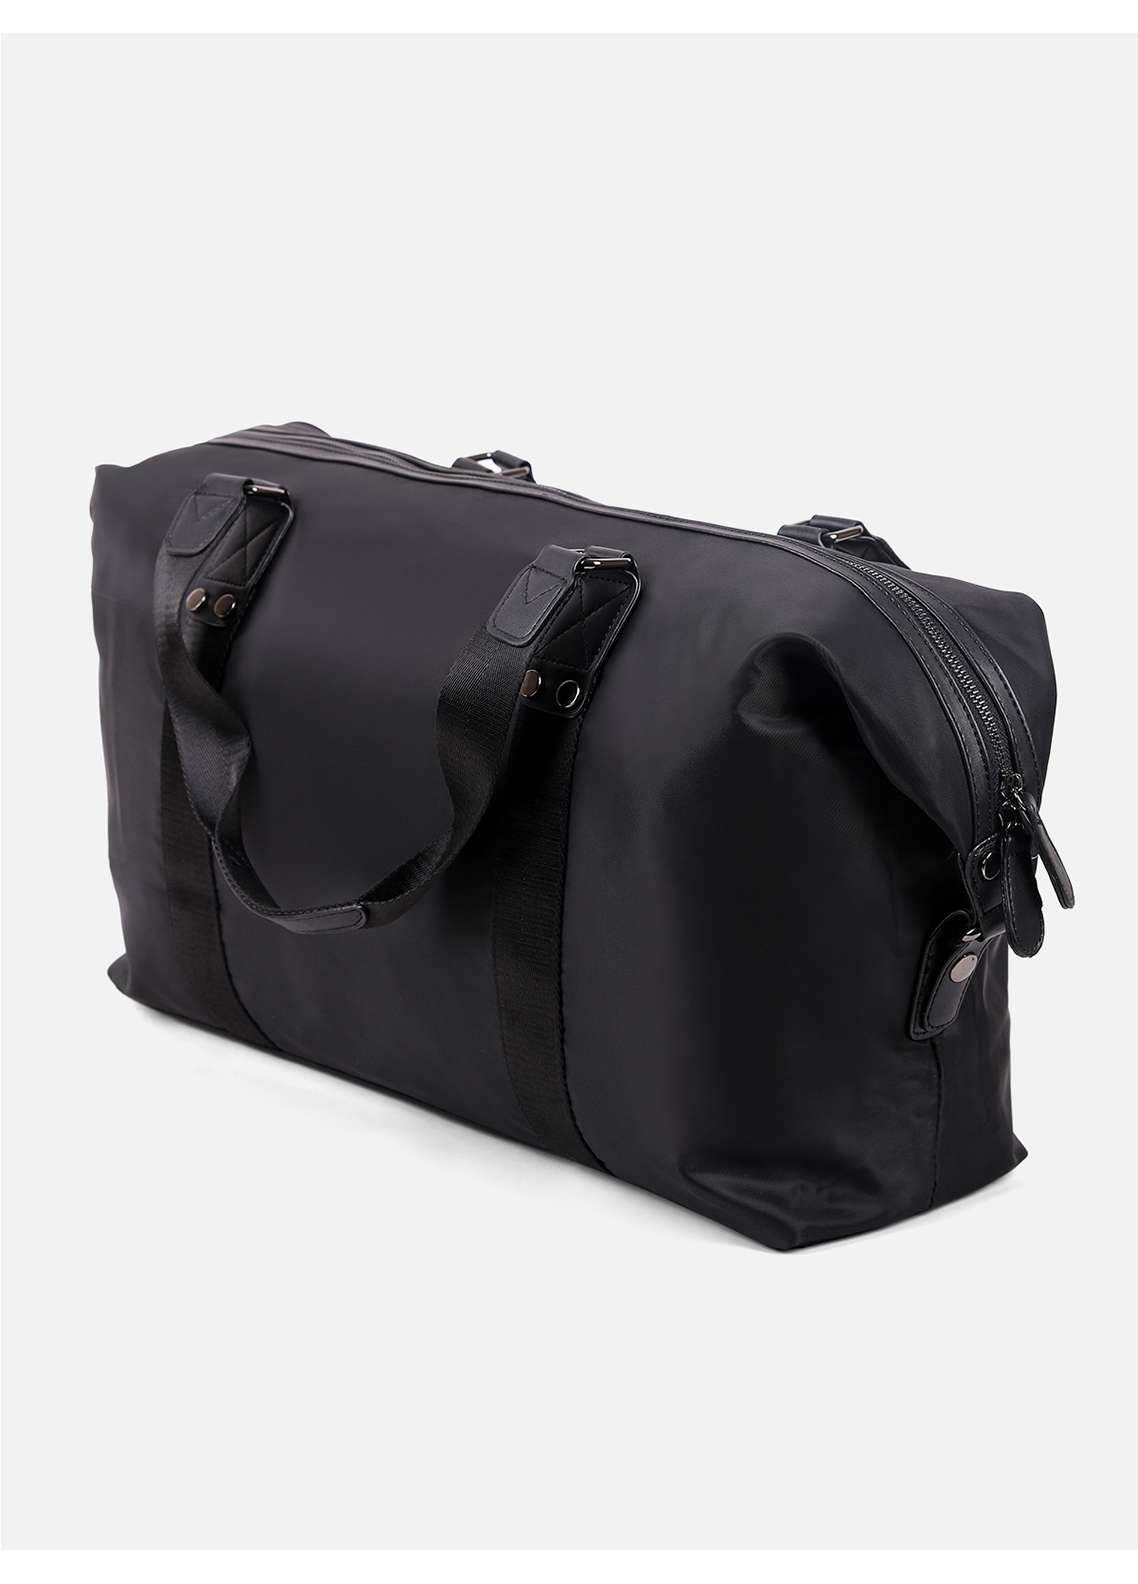 Furor Synthetic Boston Bags for Unisex - Black with Plain Texture